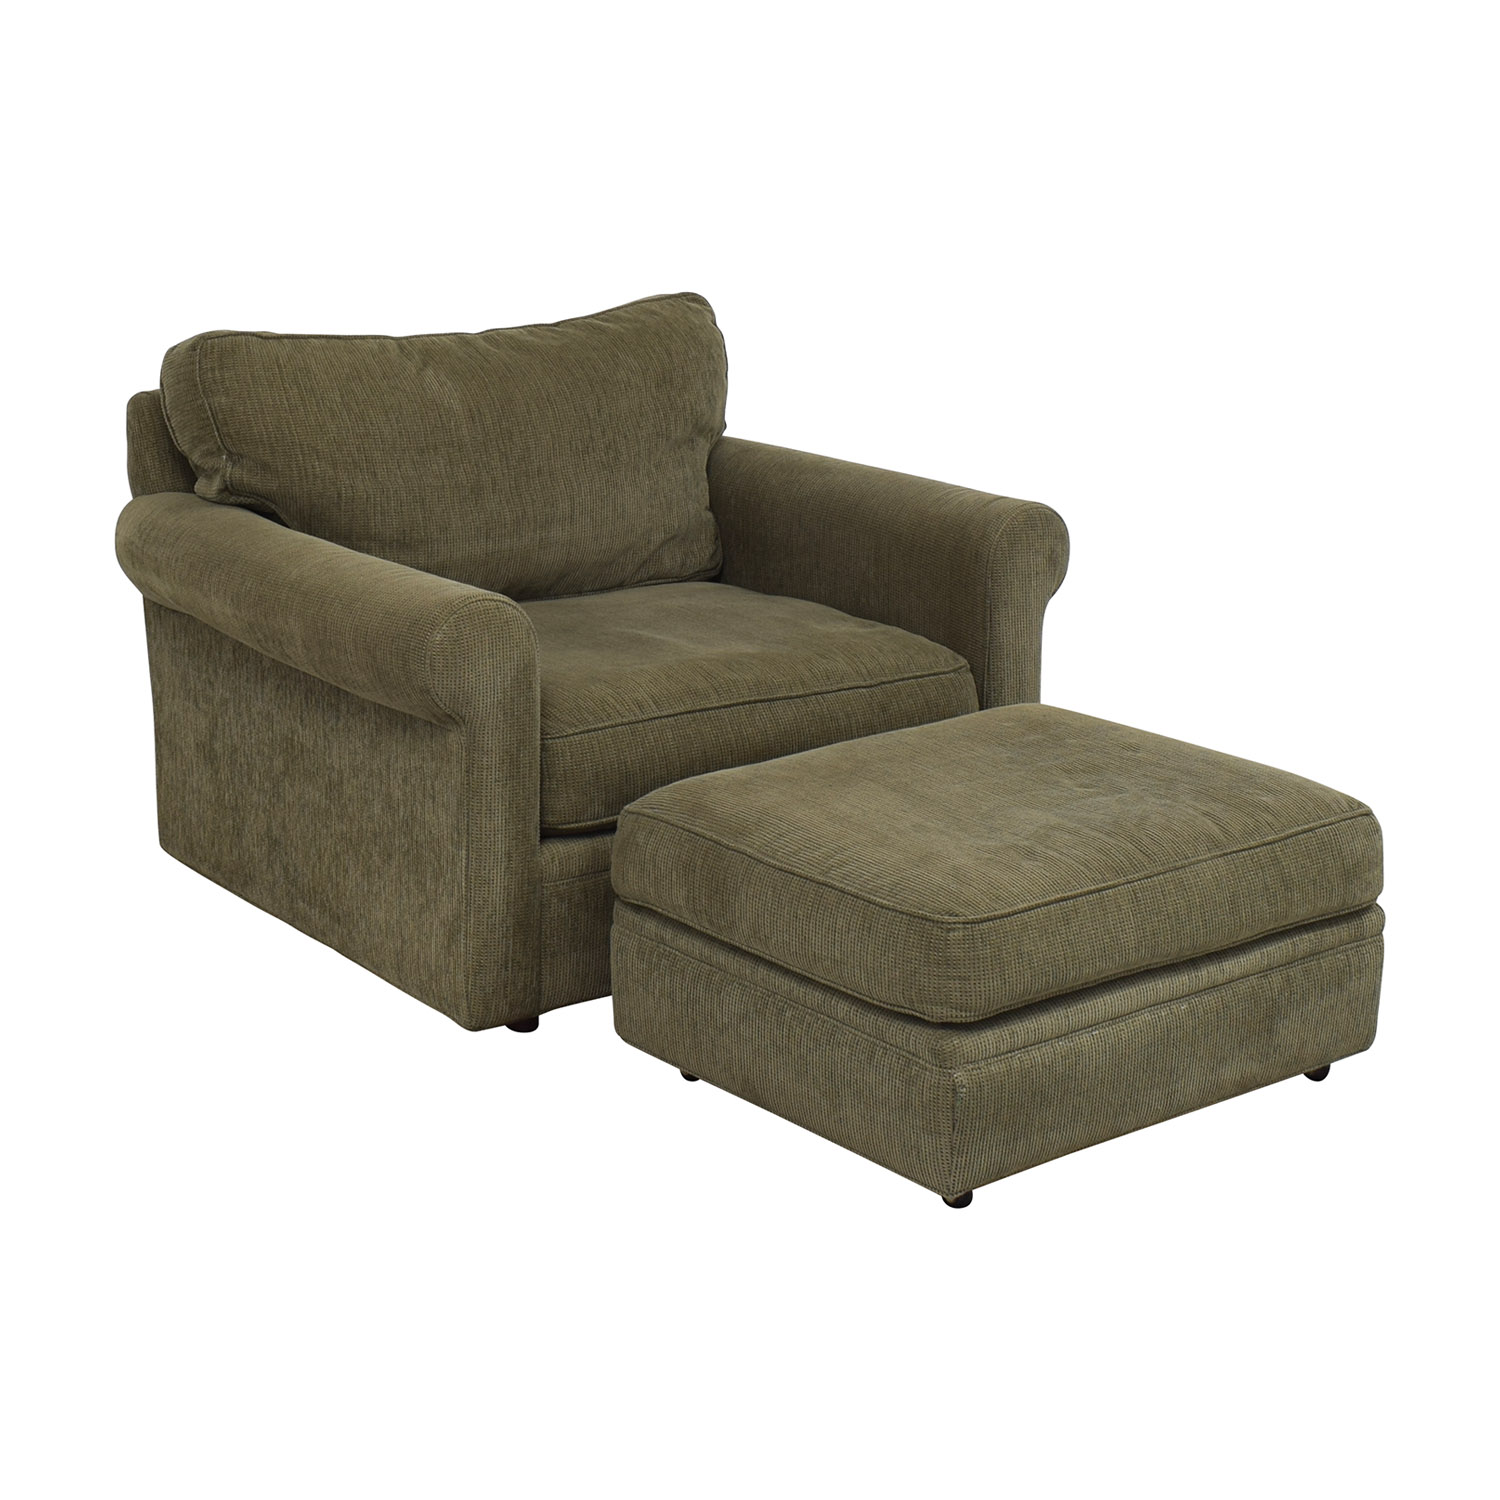 Crate & Barrel Crate & Barrel Upholstered Chair with Ottoman Chairs